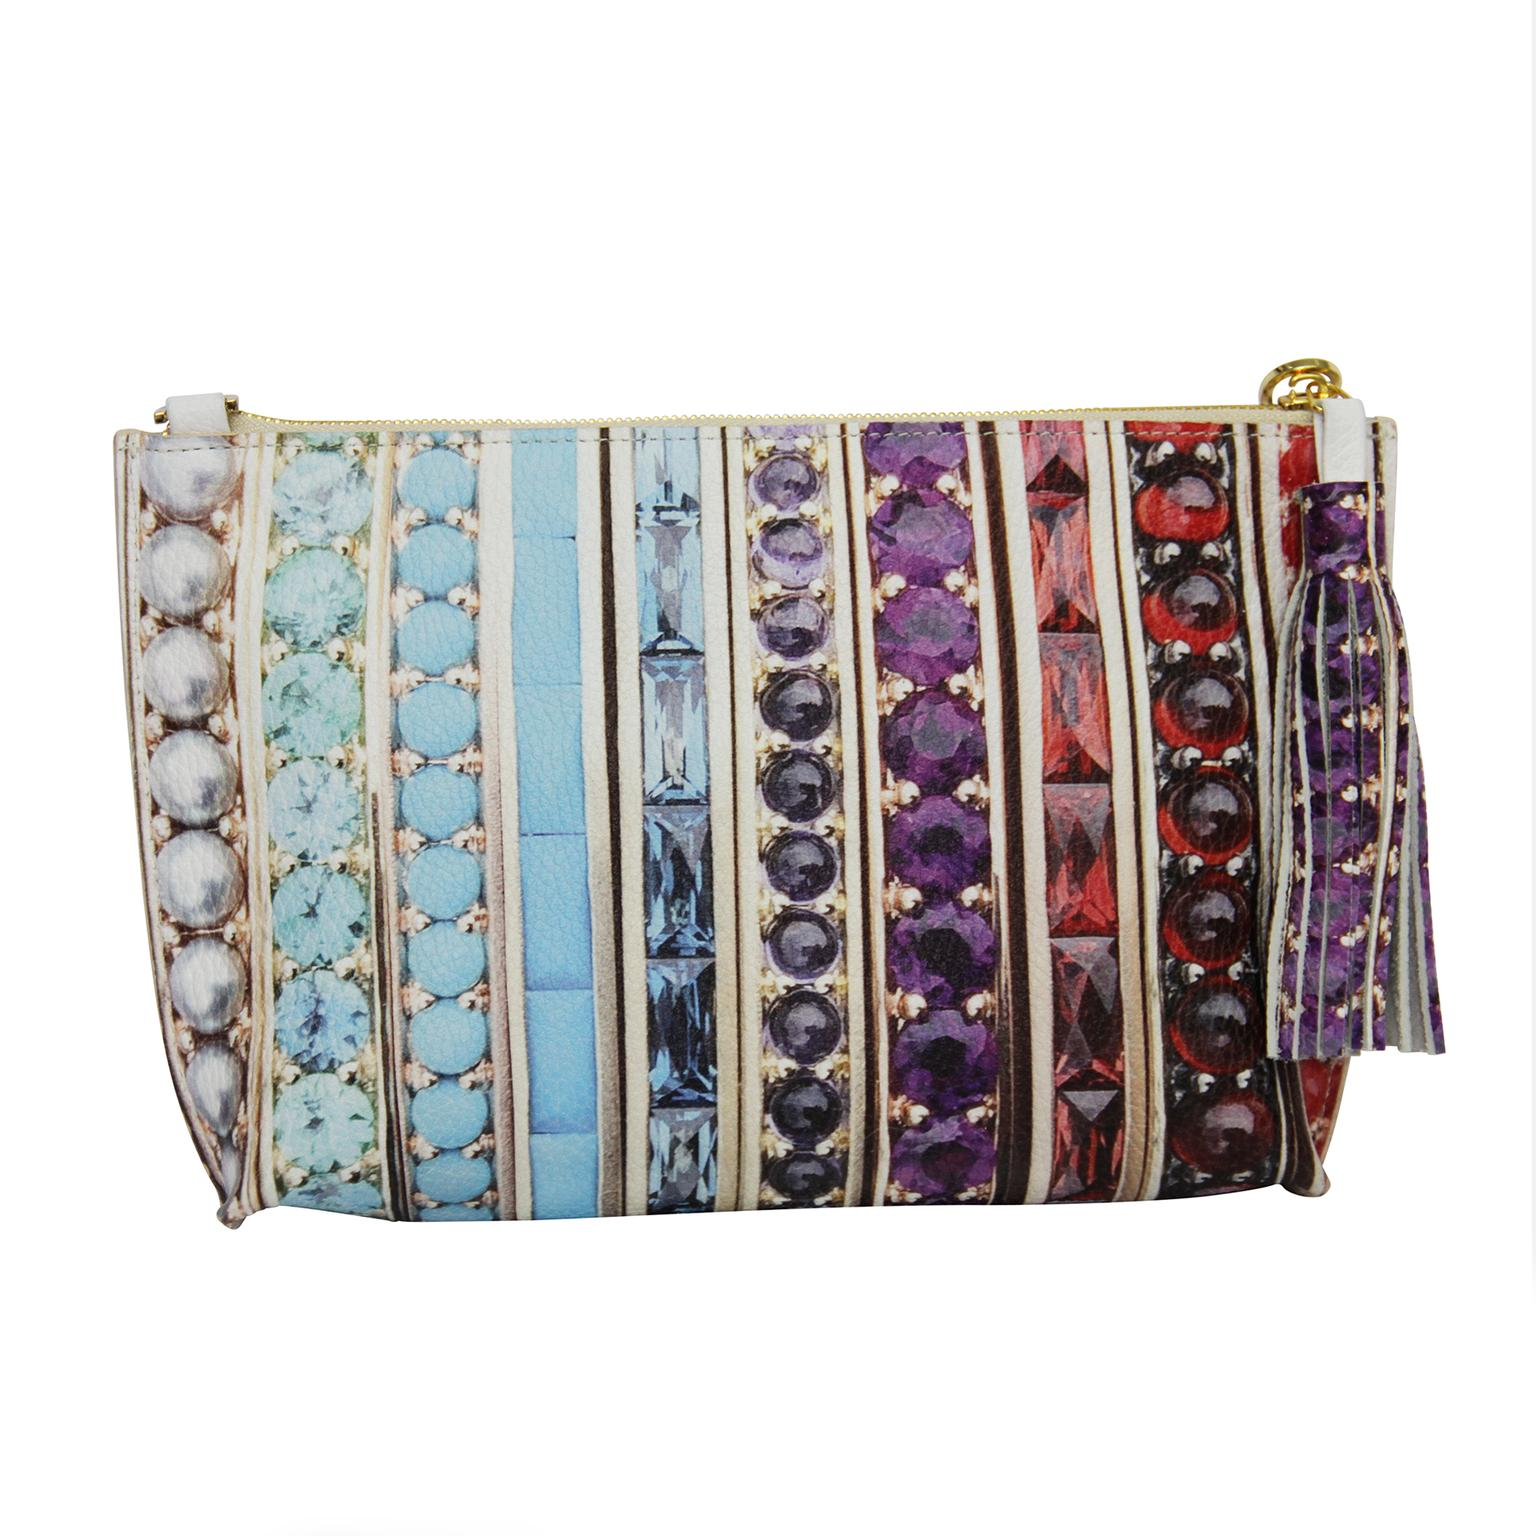 PG x Jane Taylor Jewelry soft clutch